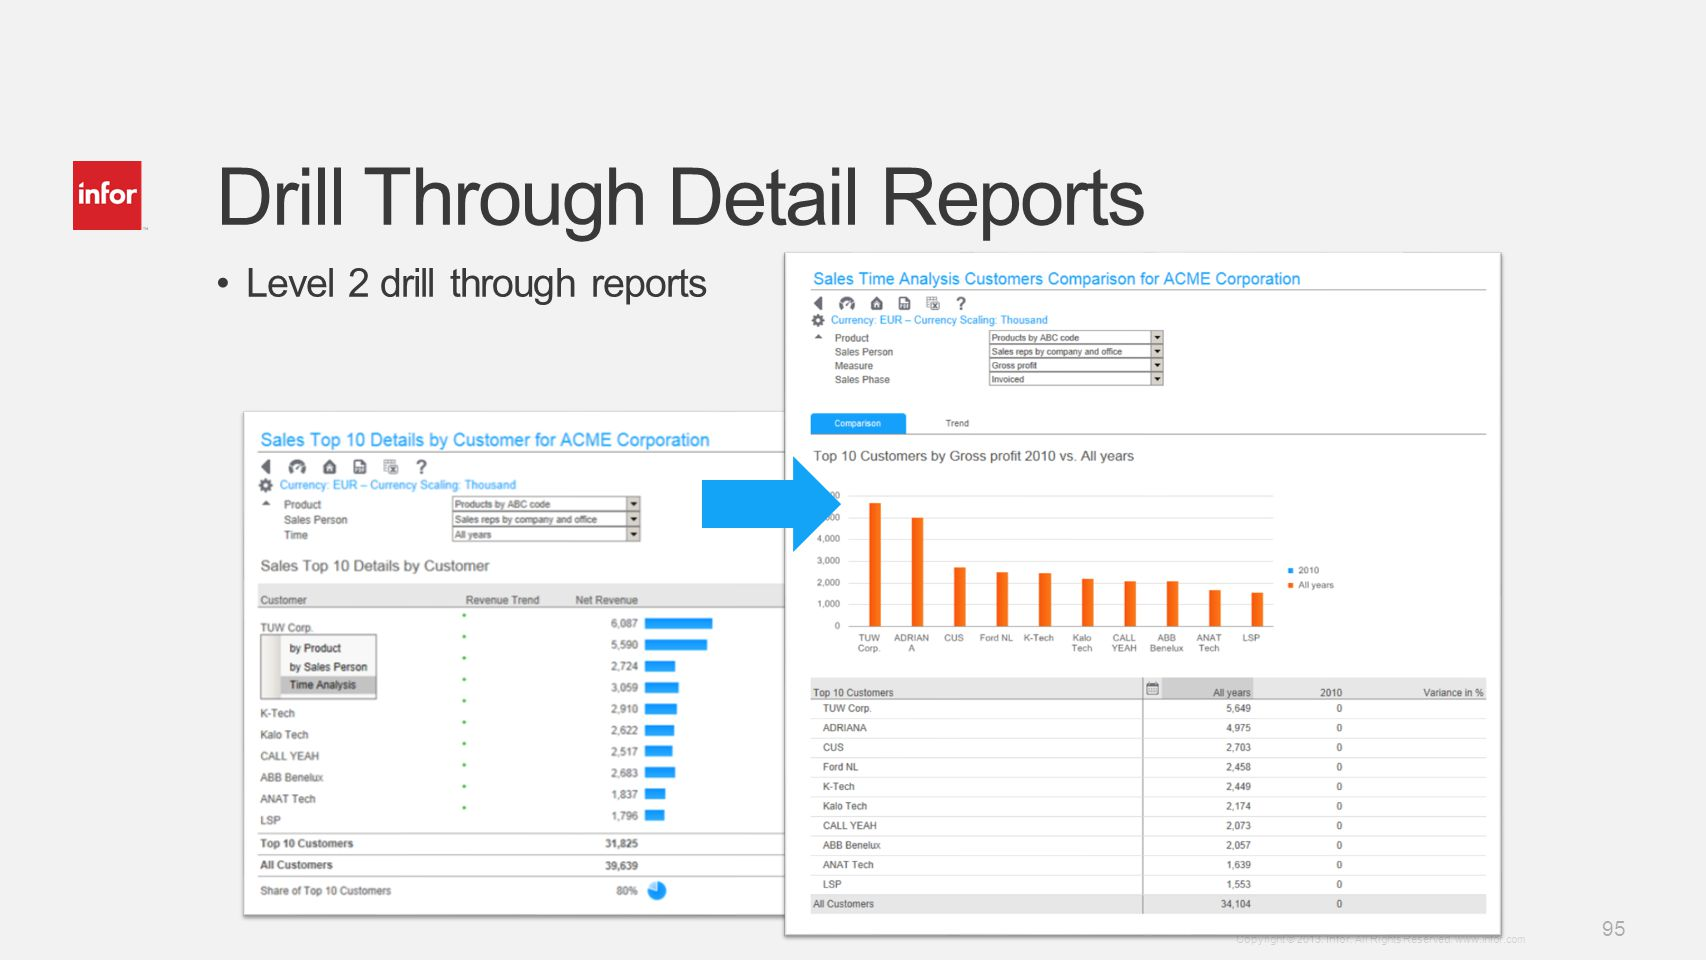 Drill Through Detail Reports